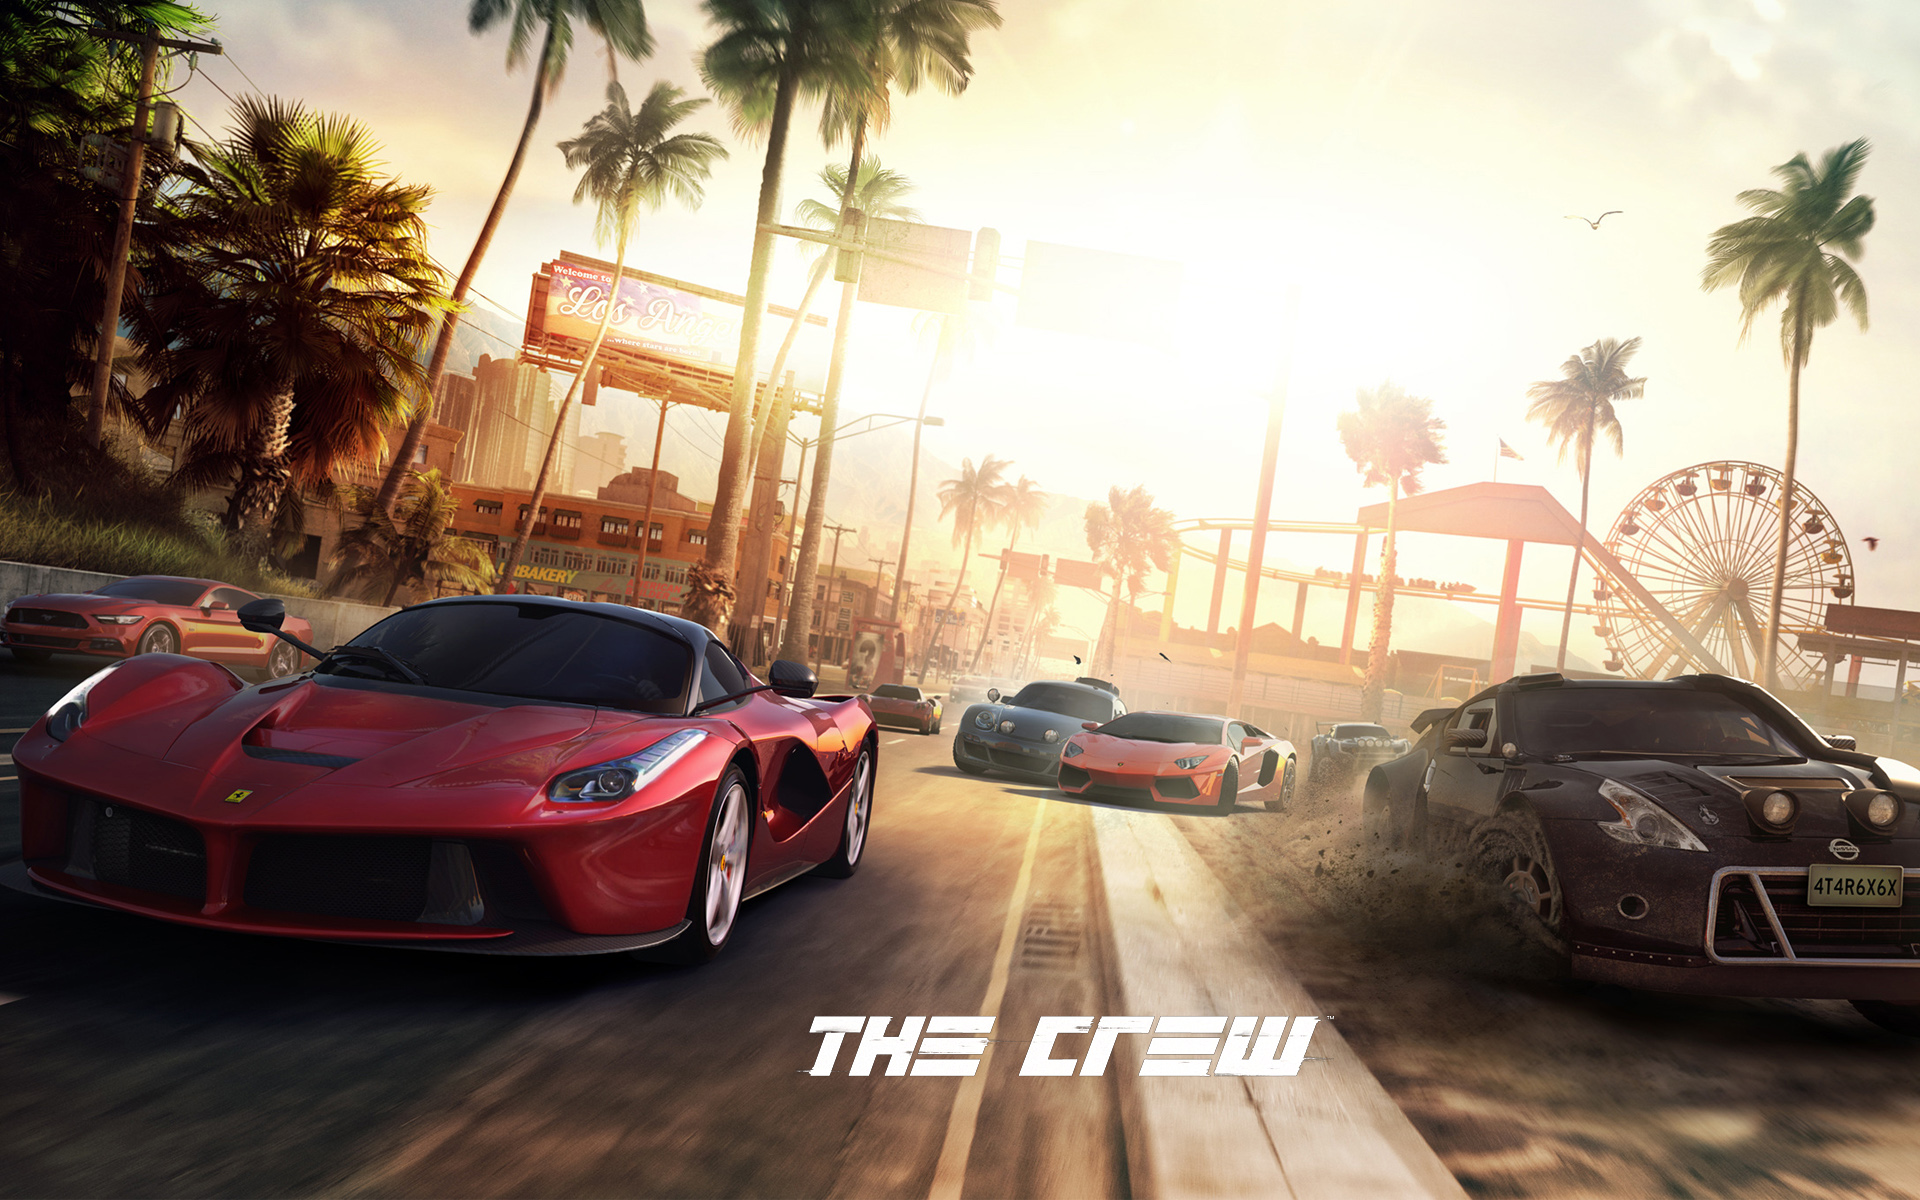 HD Wallpapers The Crew